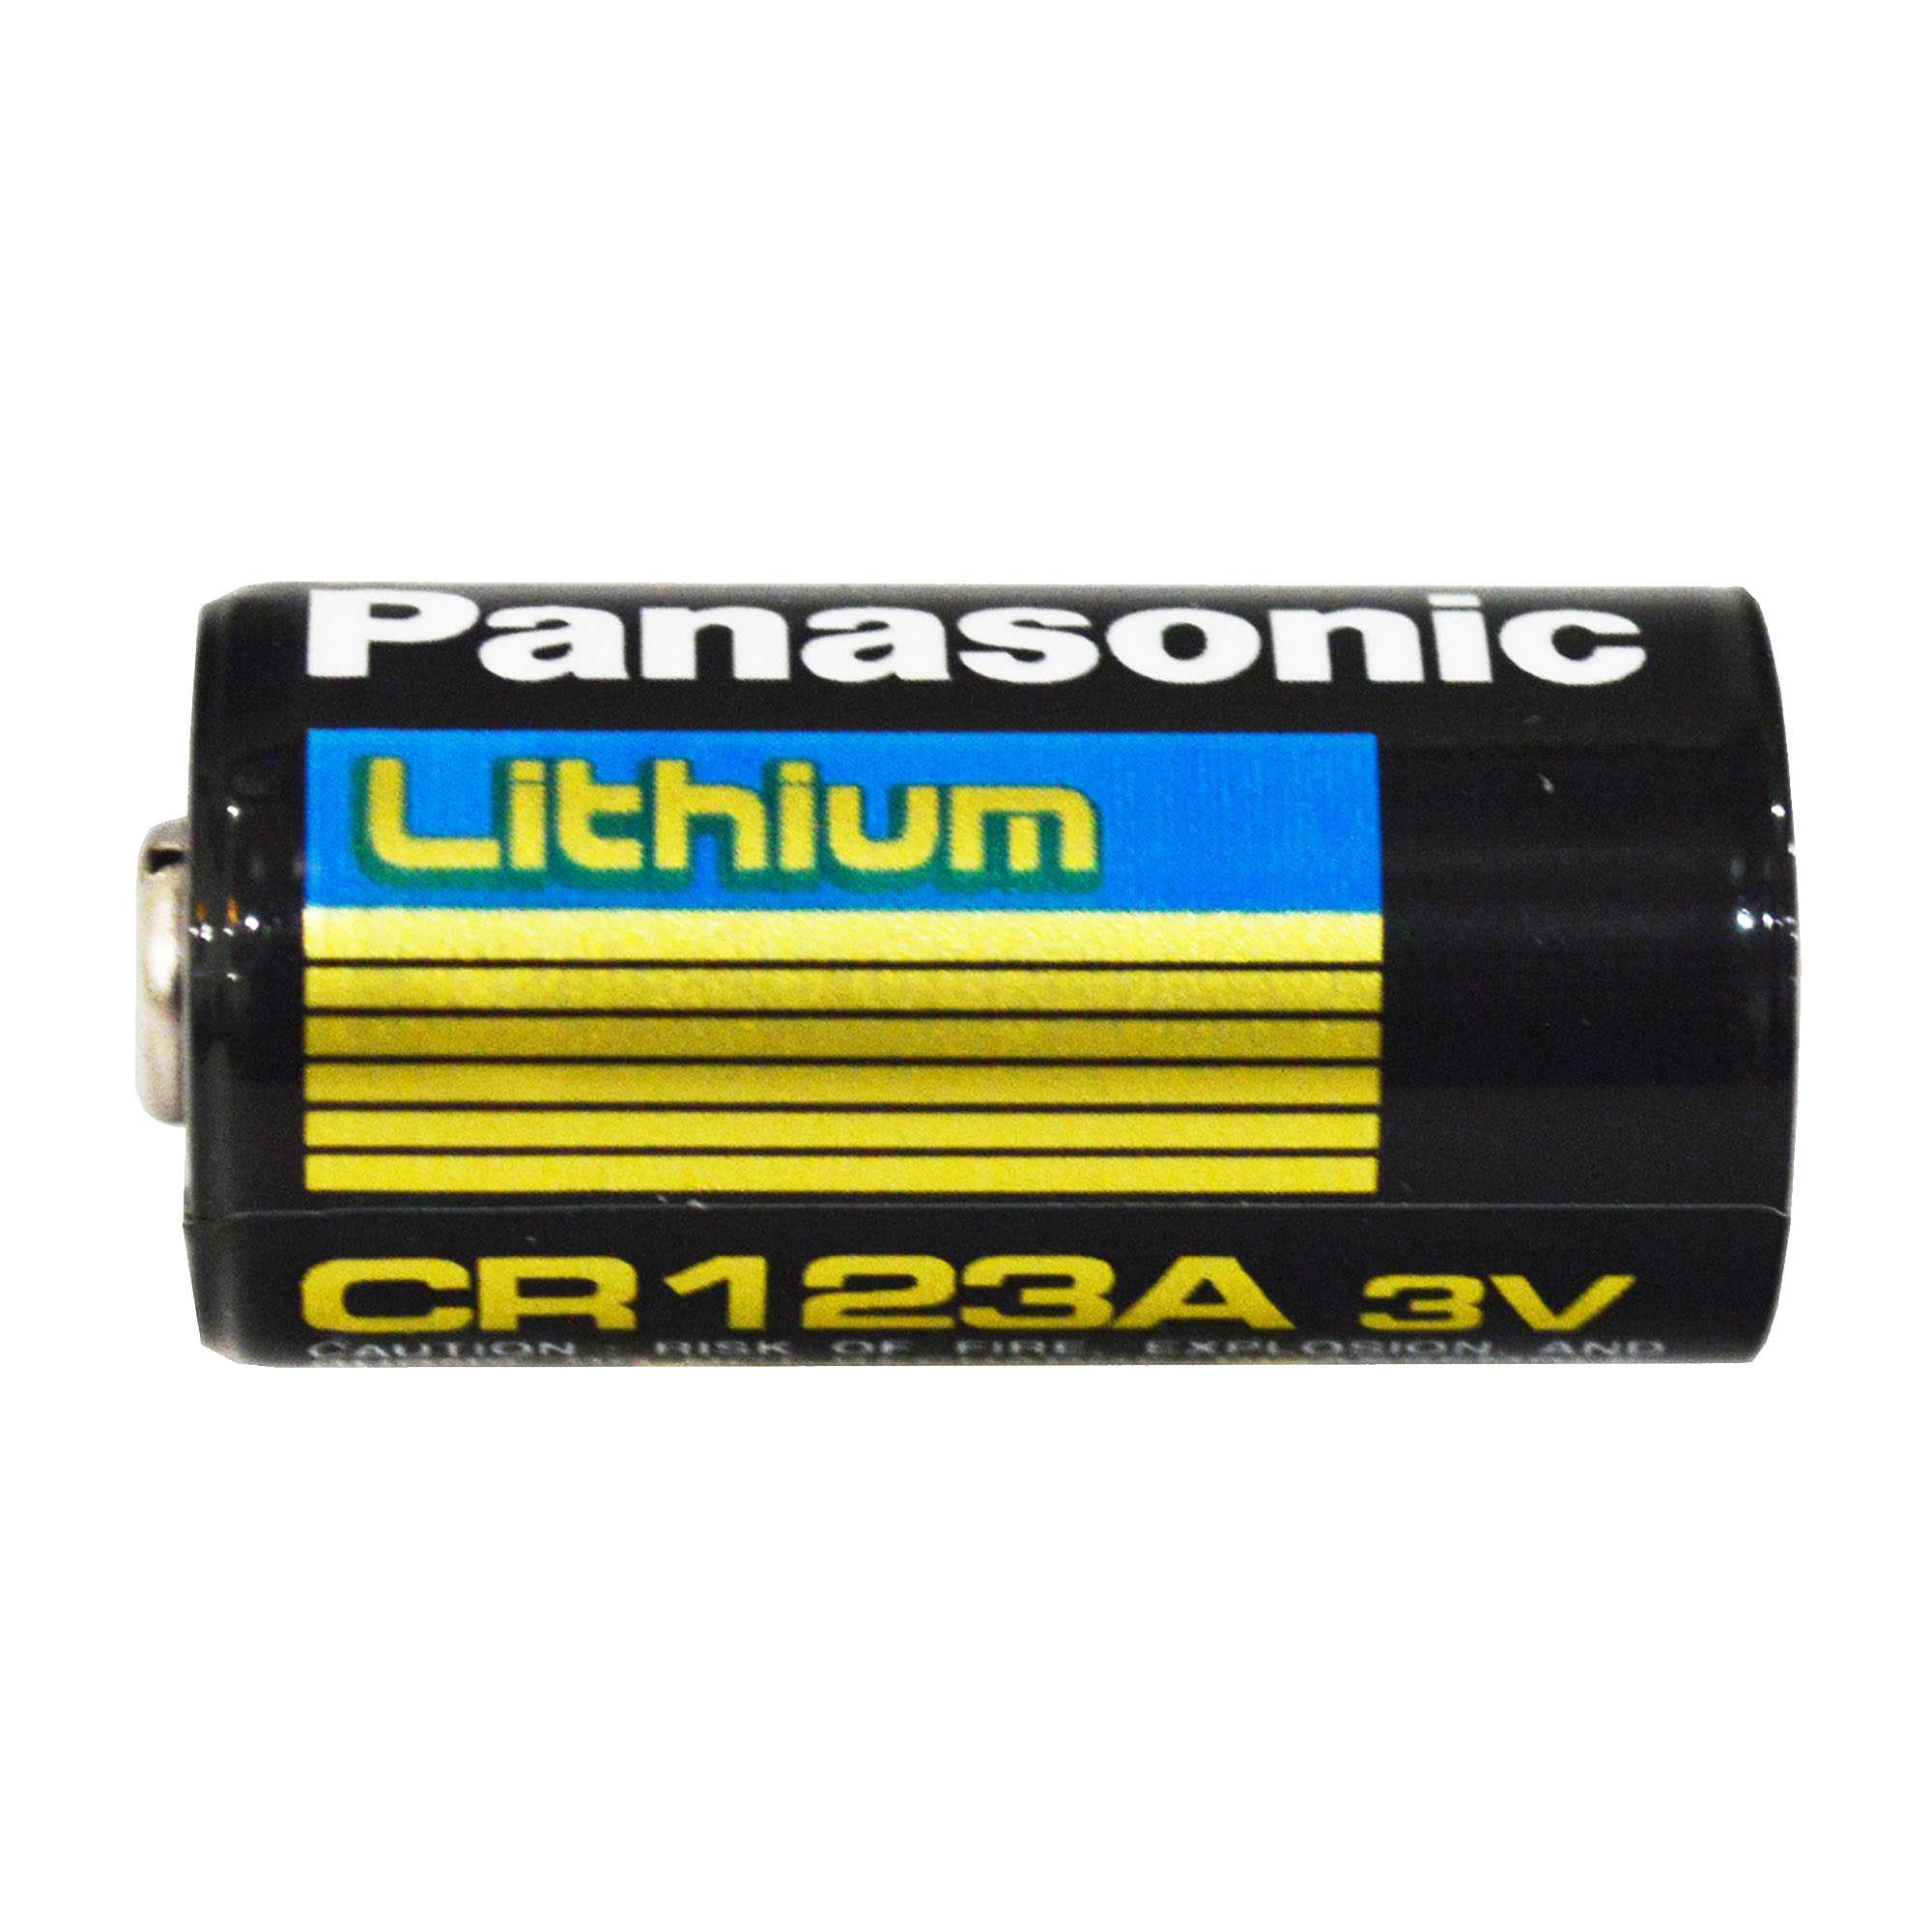 8 Pack Panasonic Cr123a 3 Volt Lithium Batteries Cr17345